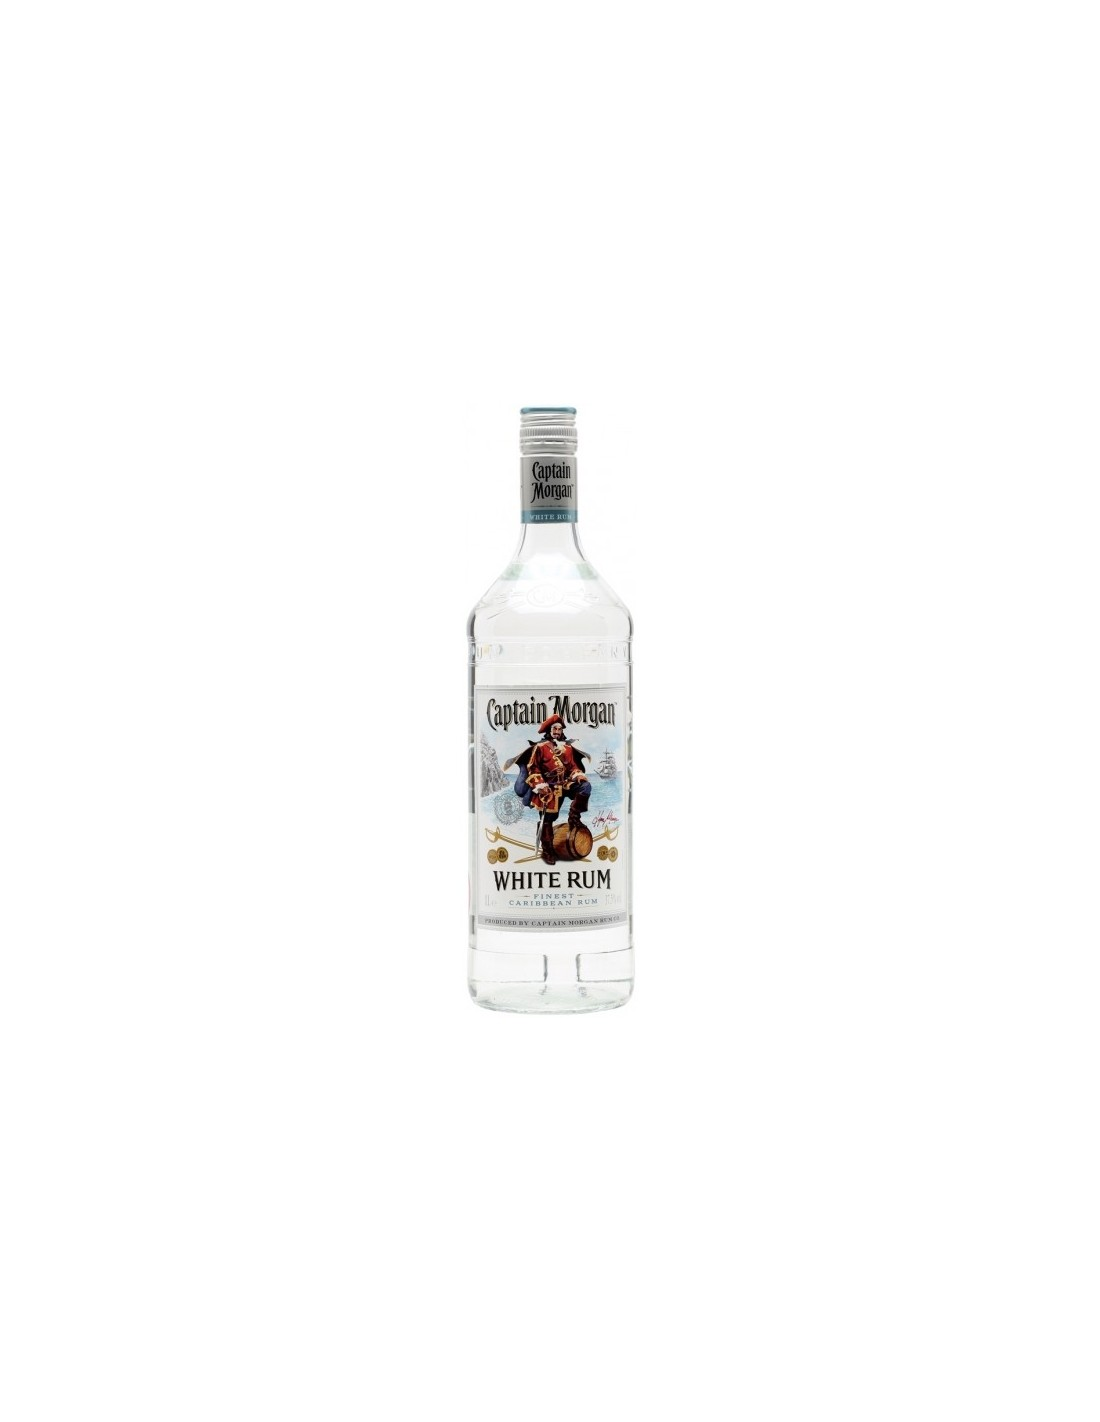 Rom alb Captain Morgan, 37.5% alc., 1L, Jamaica